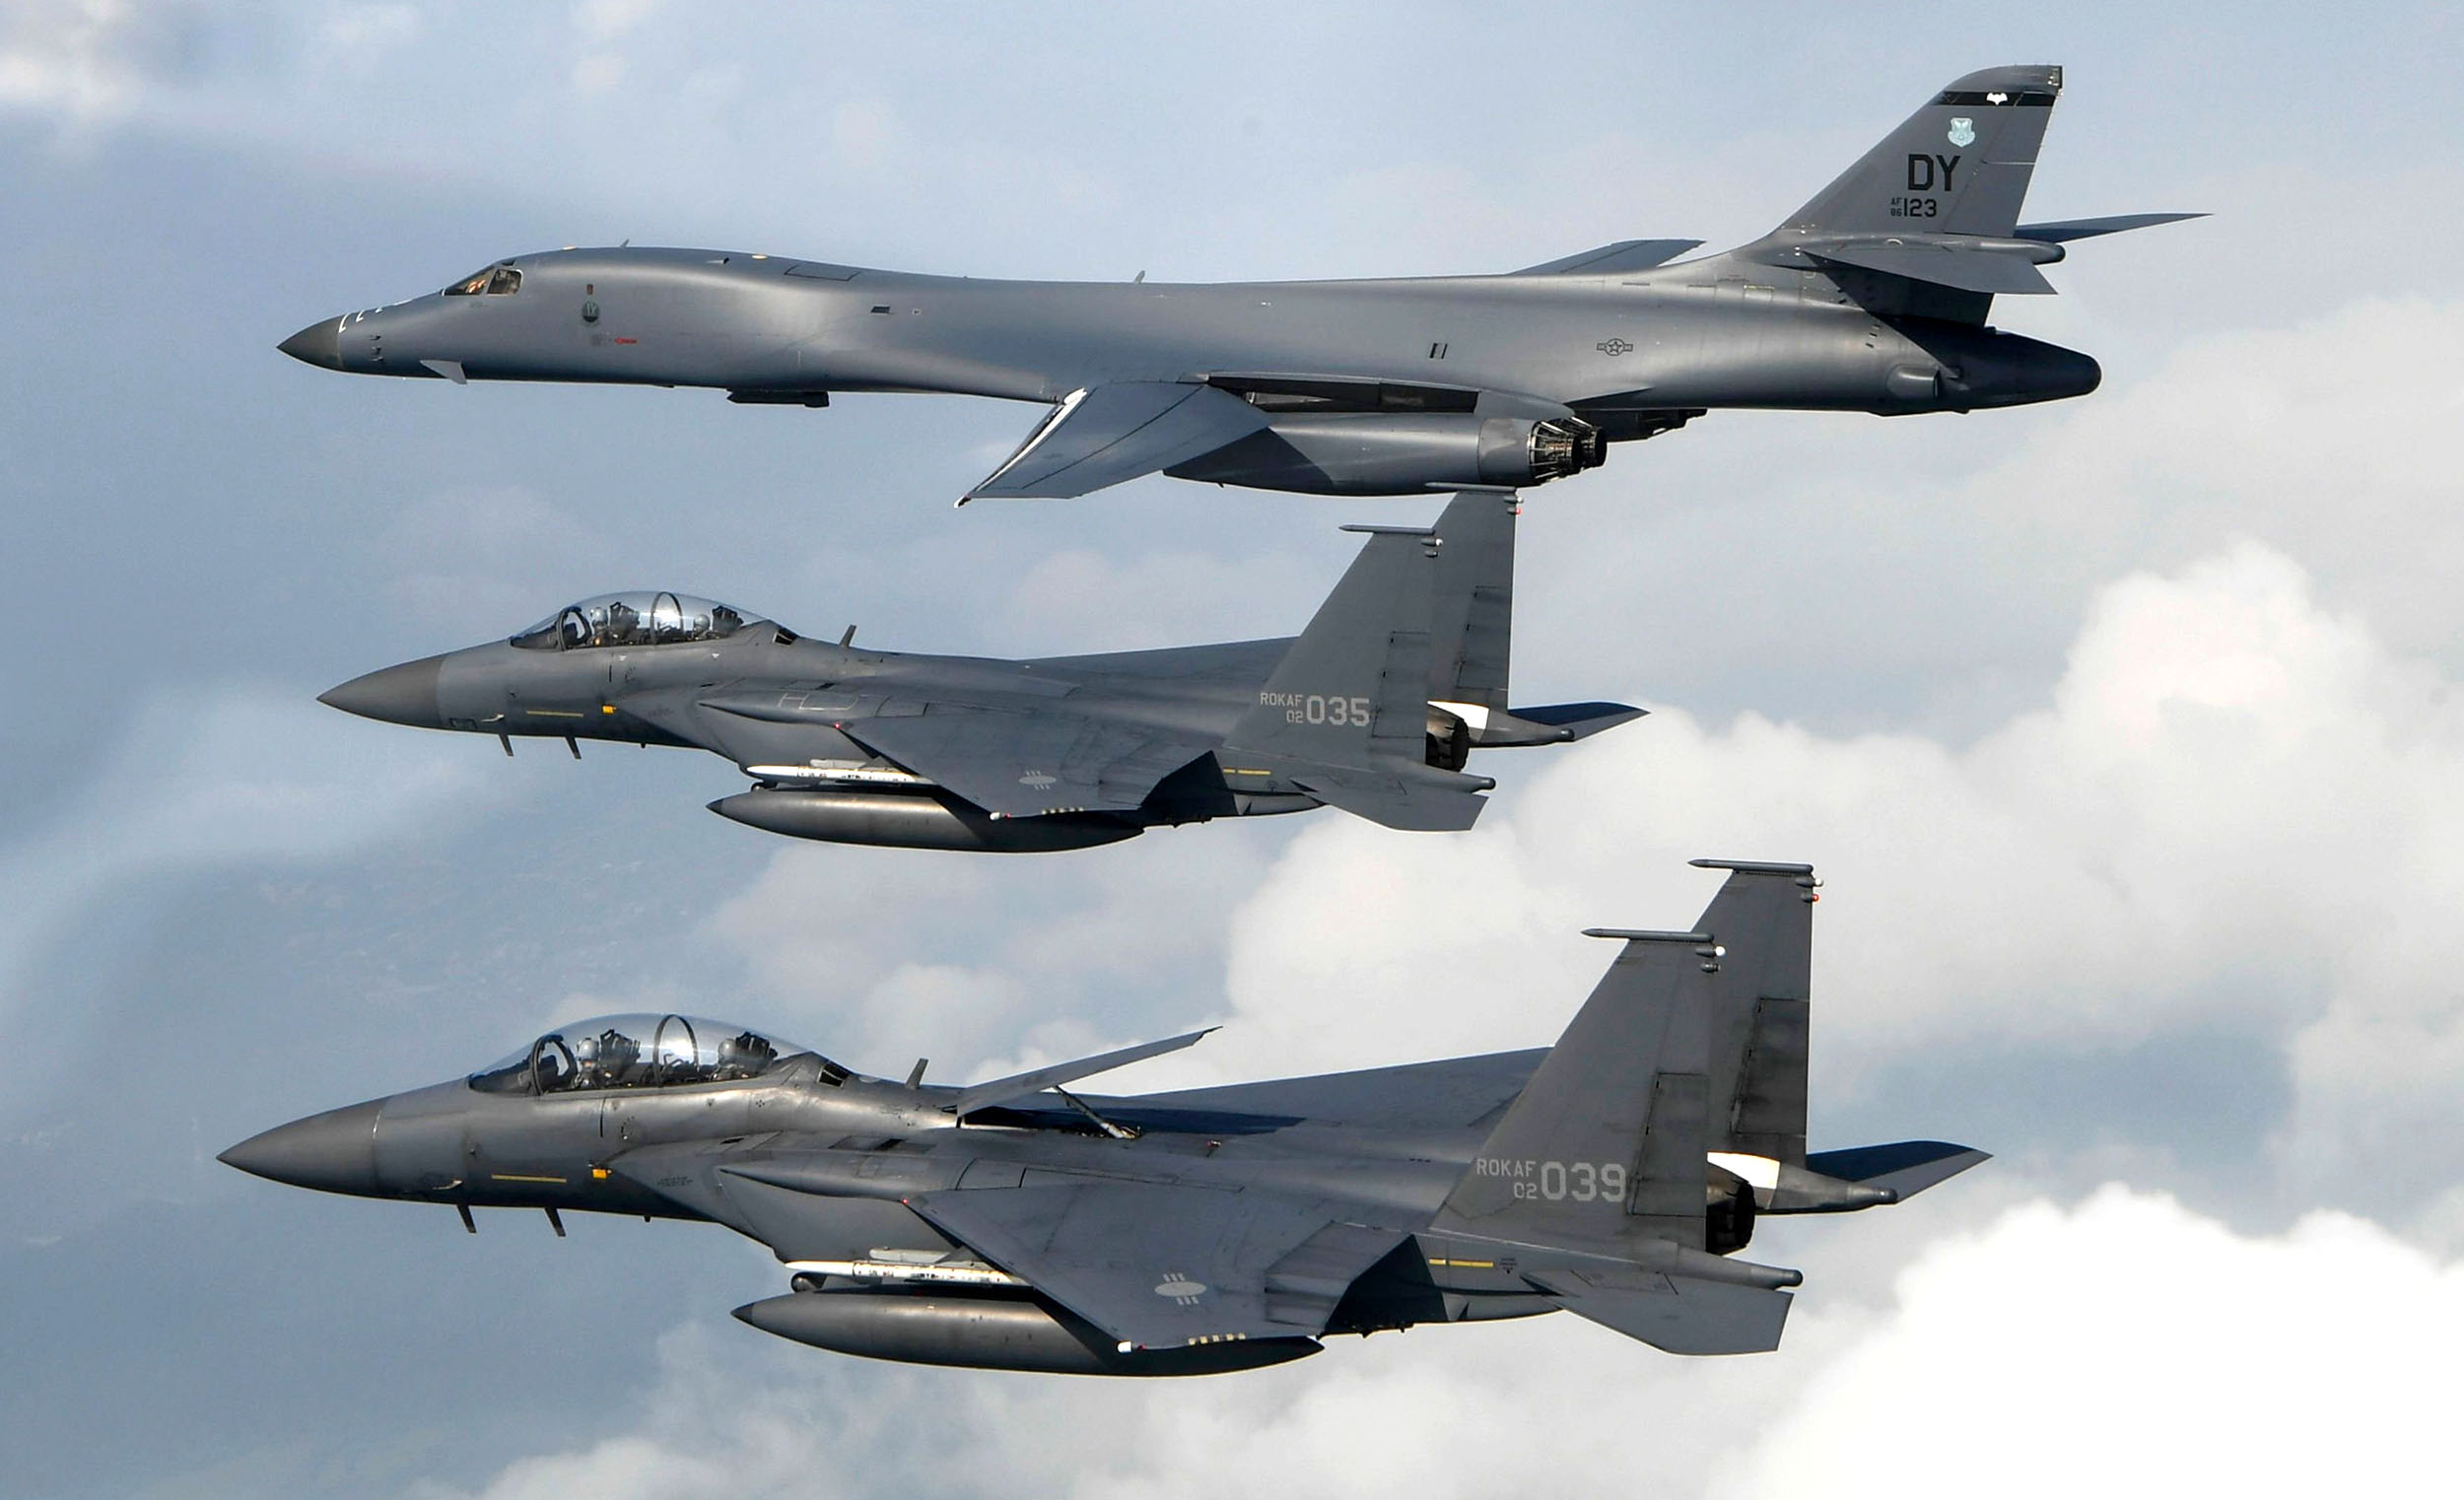 U.S. Fighter Jets Fly Near North Korea in Show of Force